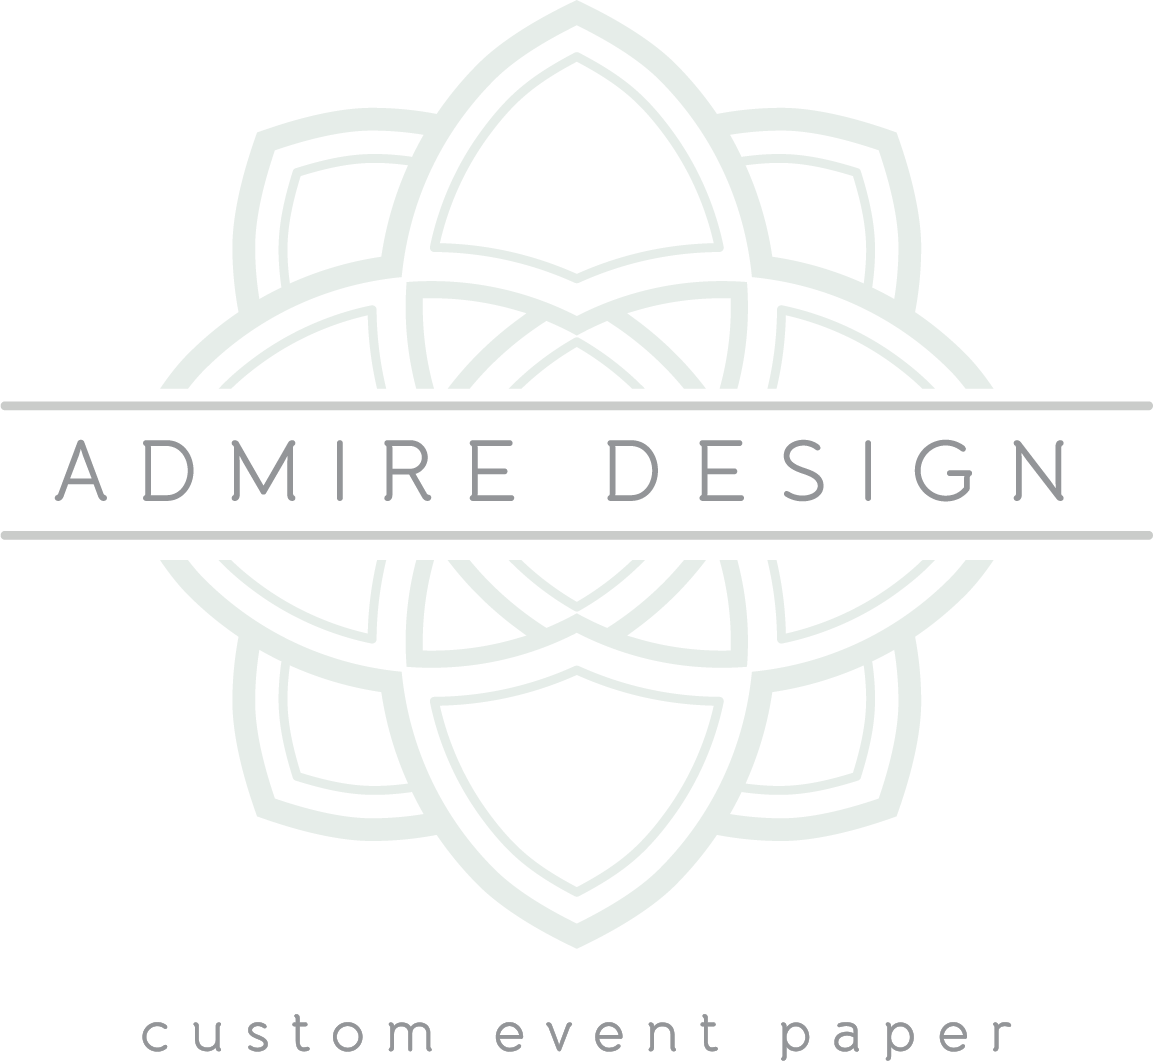 Admire Design | Custom Event Paper